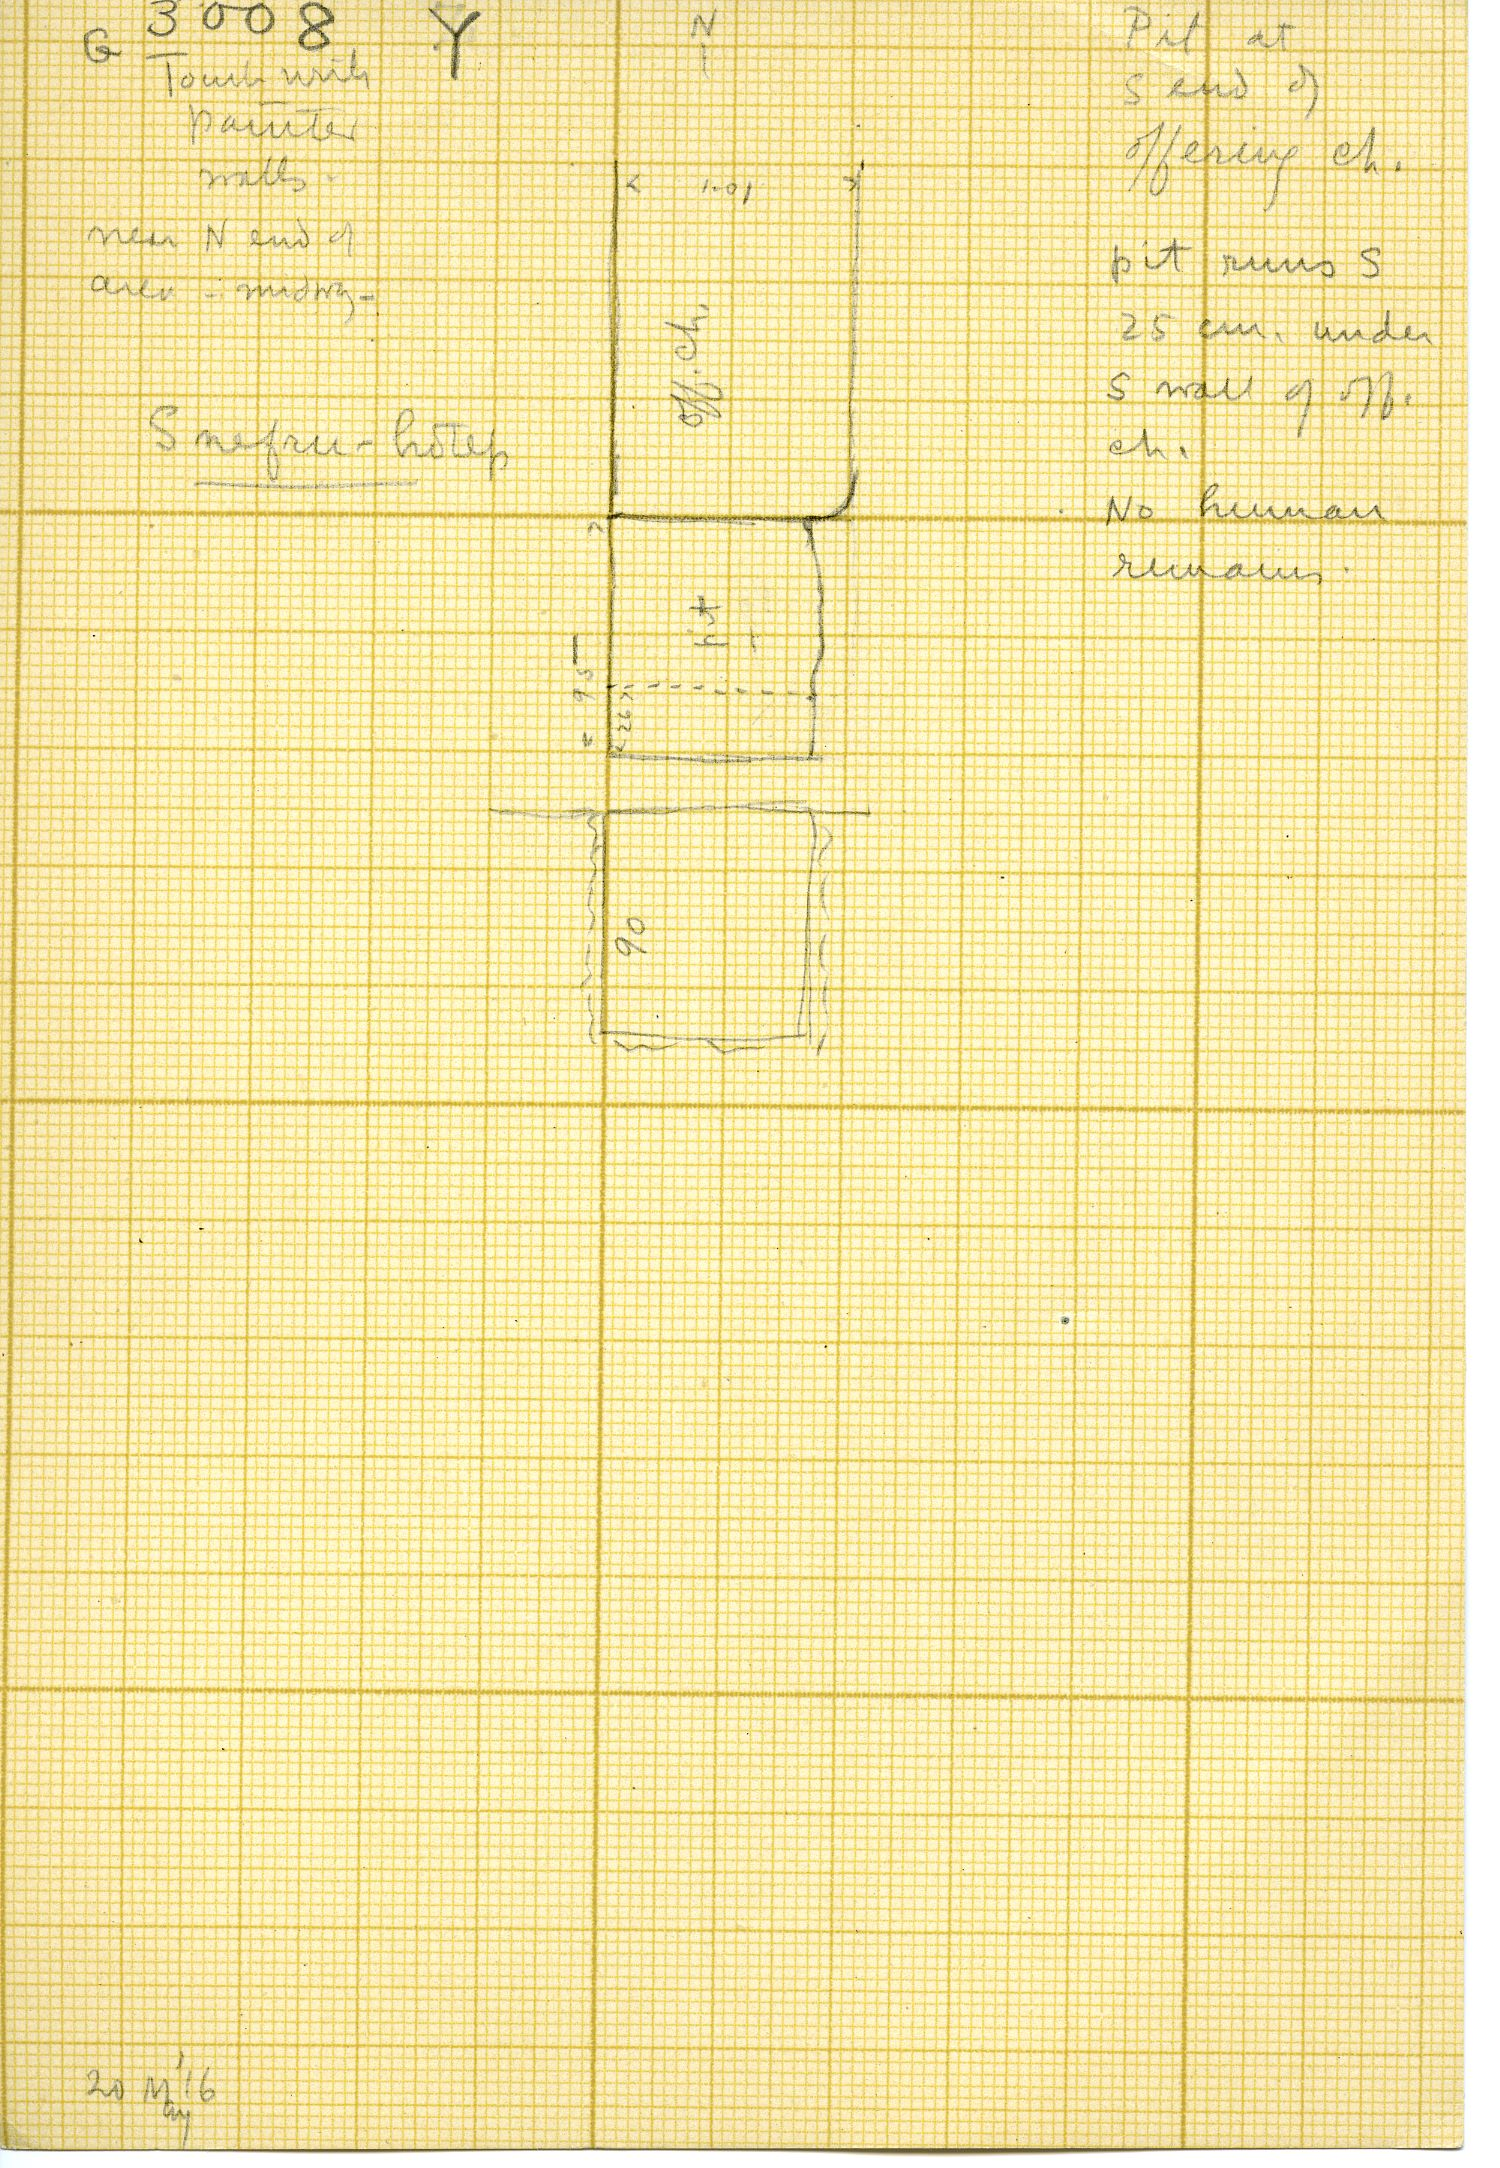 Maps and plans: G 3008, Shaft Y